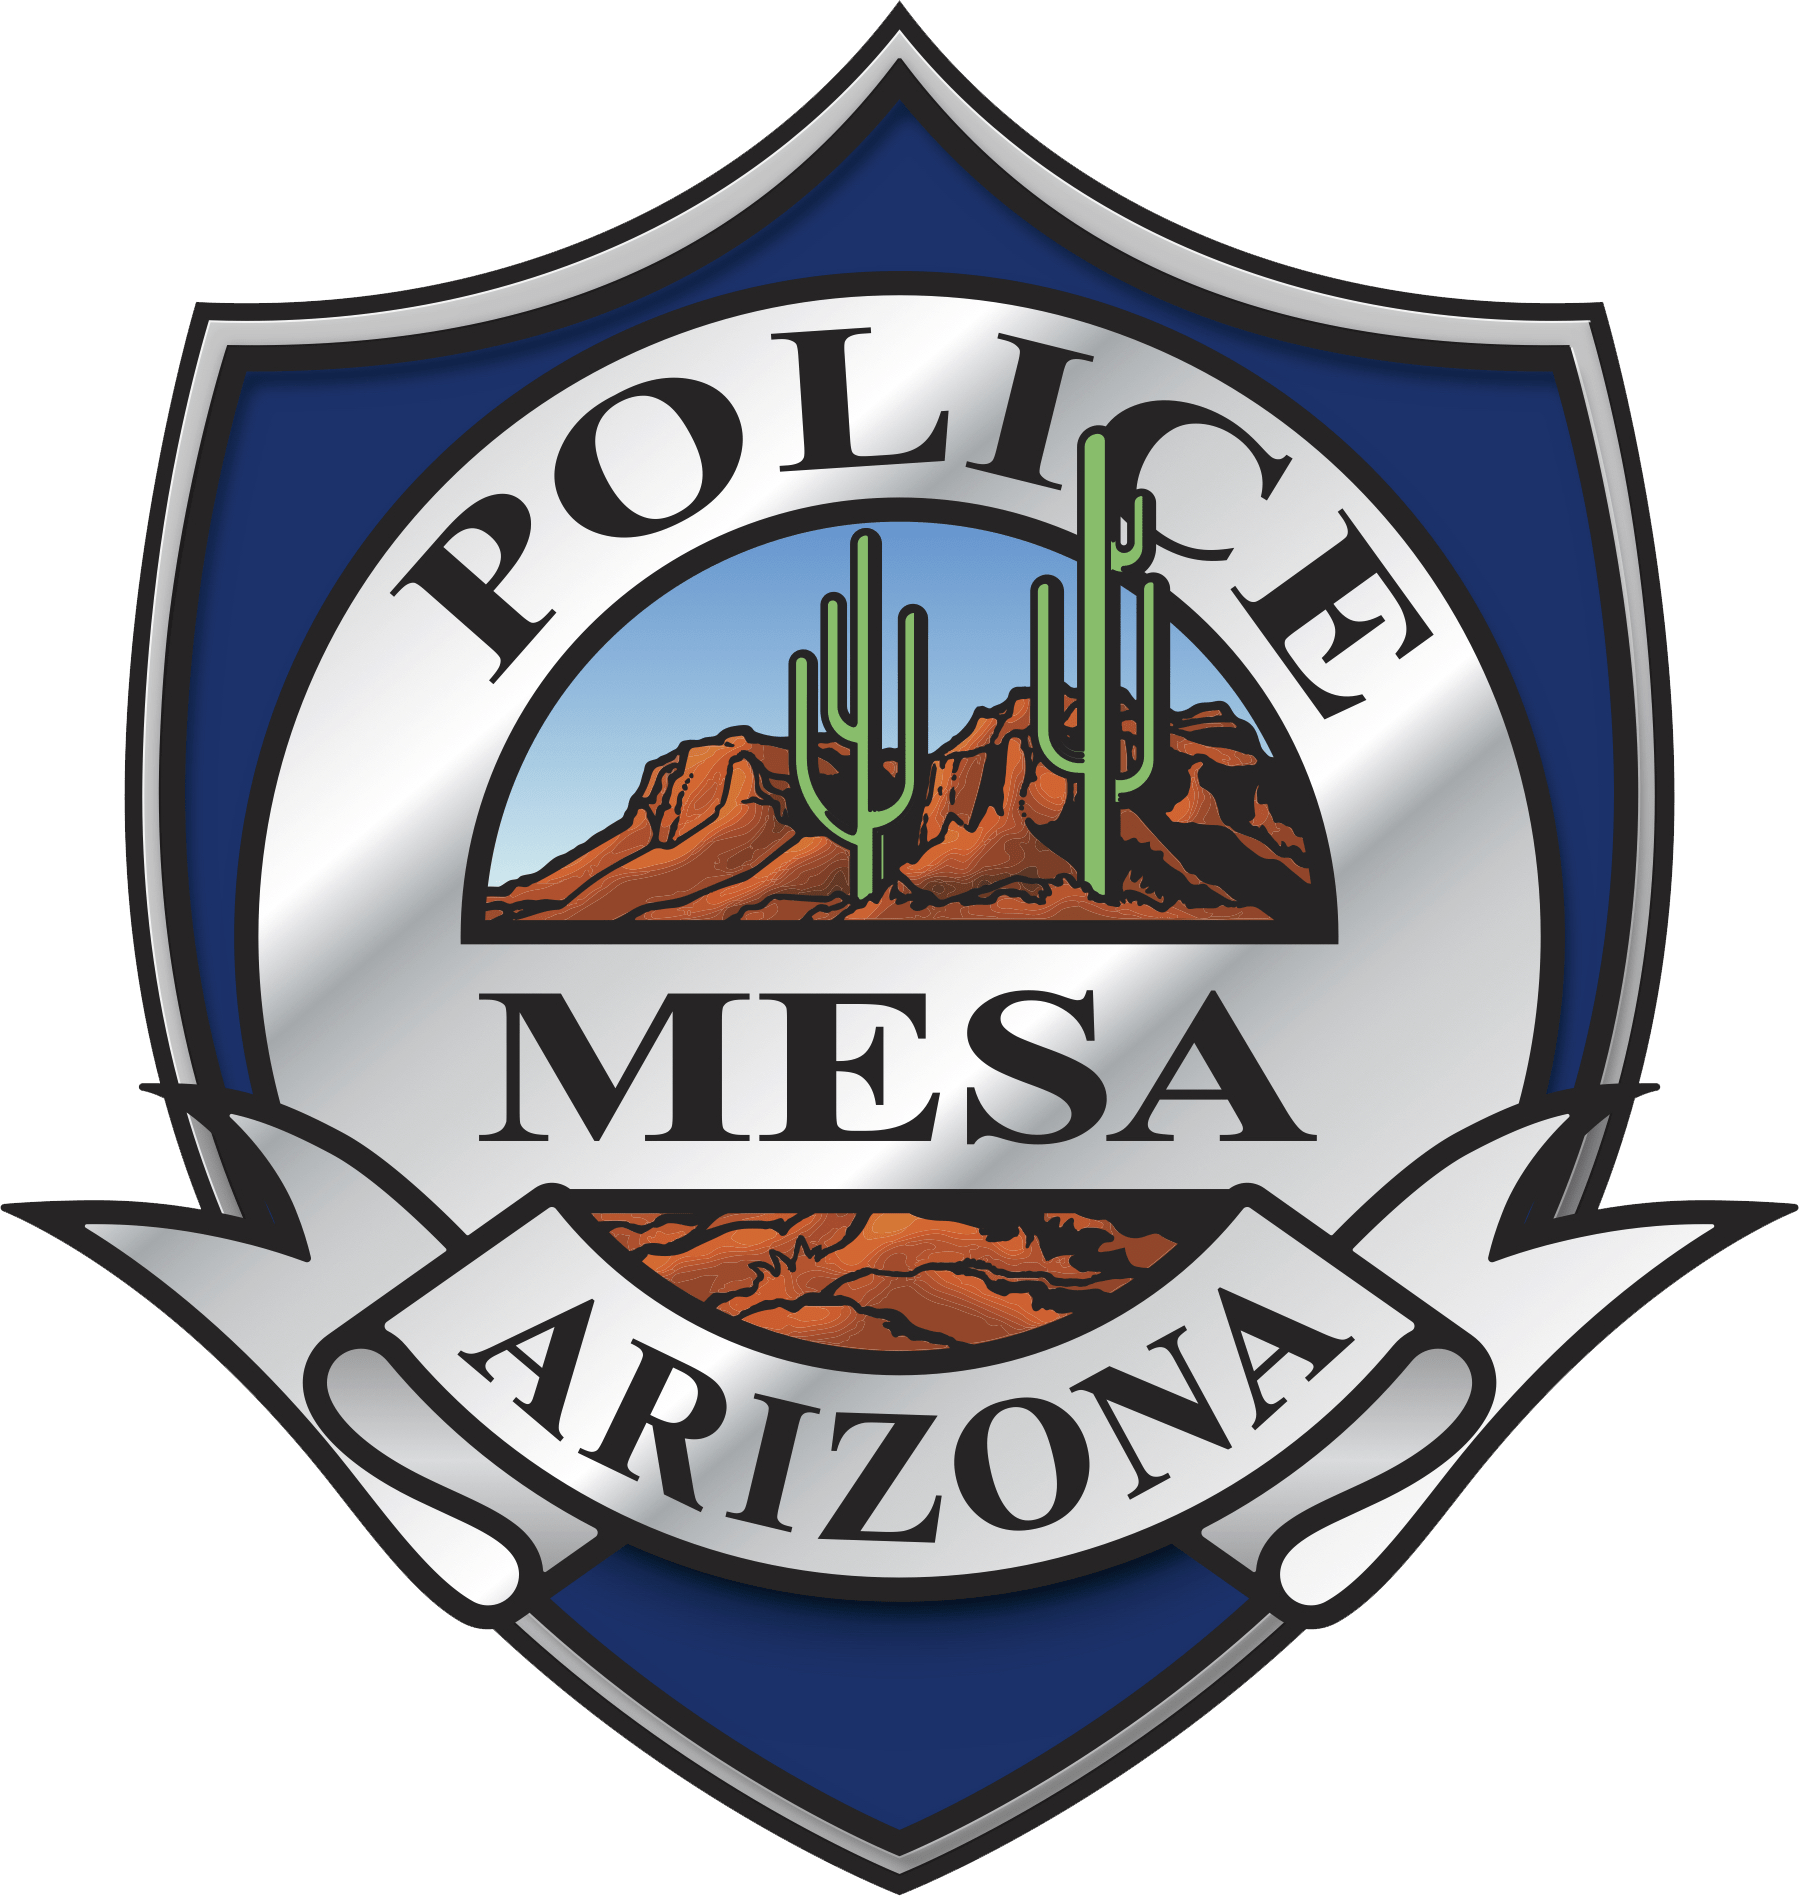 mesa pd shield logo